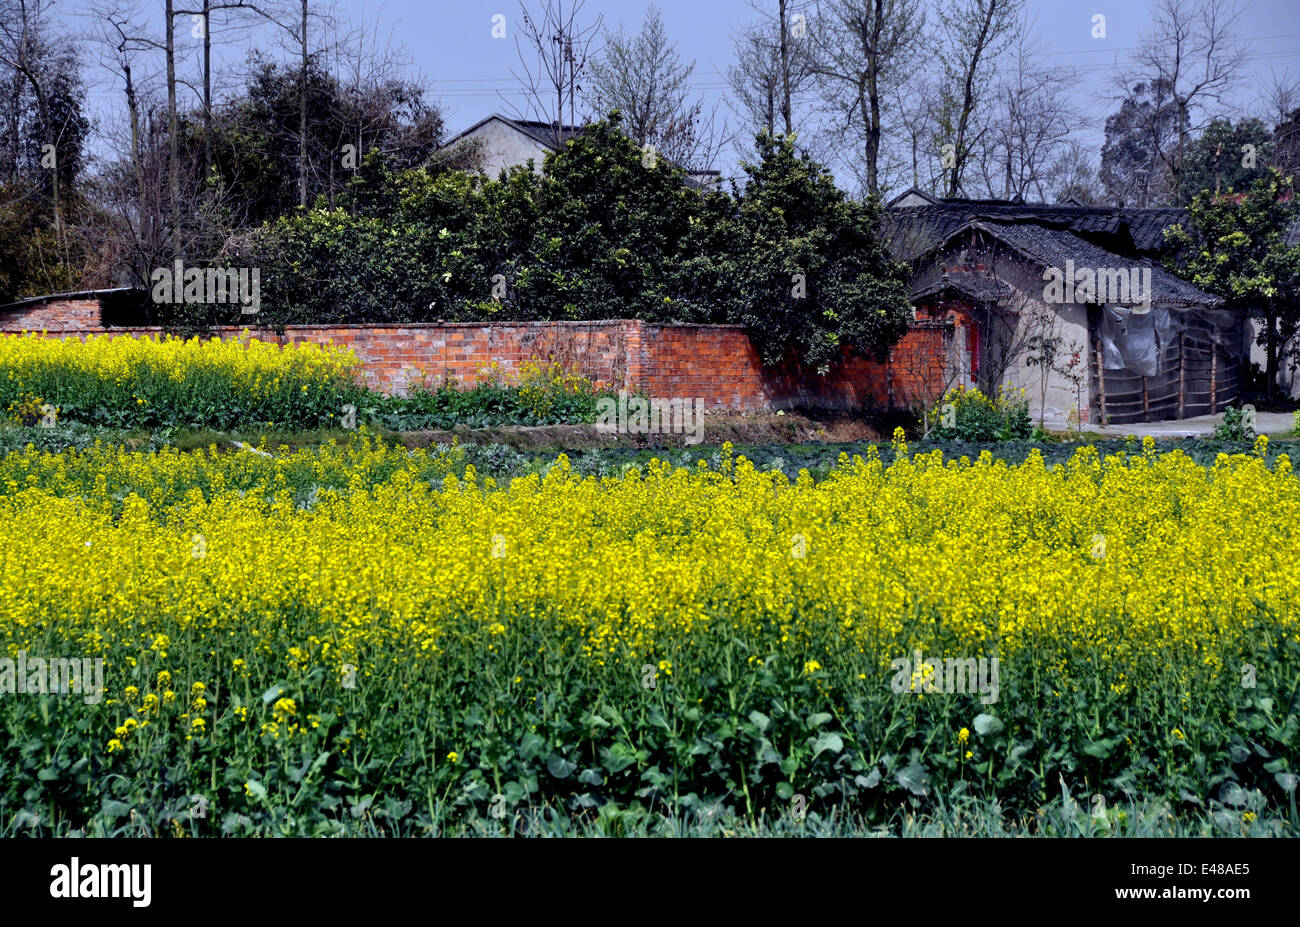 PENGZHOU, CHINA: Yellow rapeseed flowers and a Sichuan province farmhouse Stock Photo